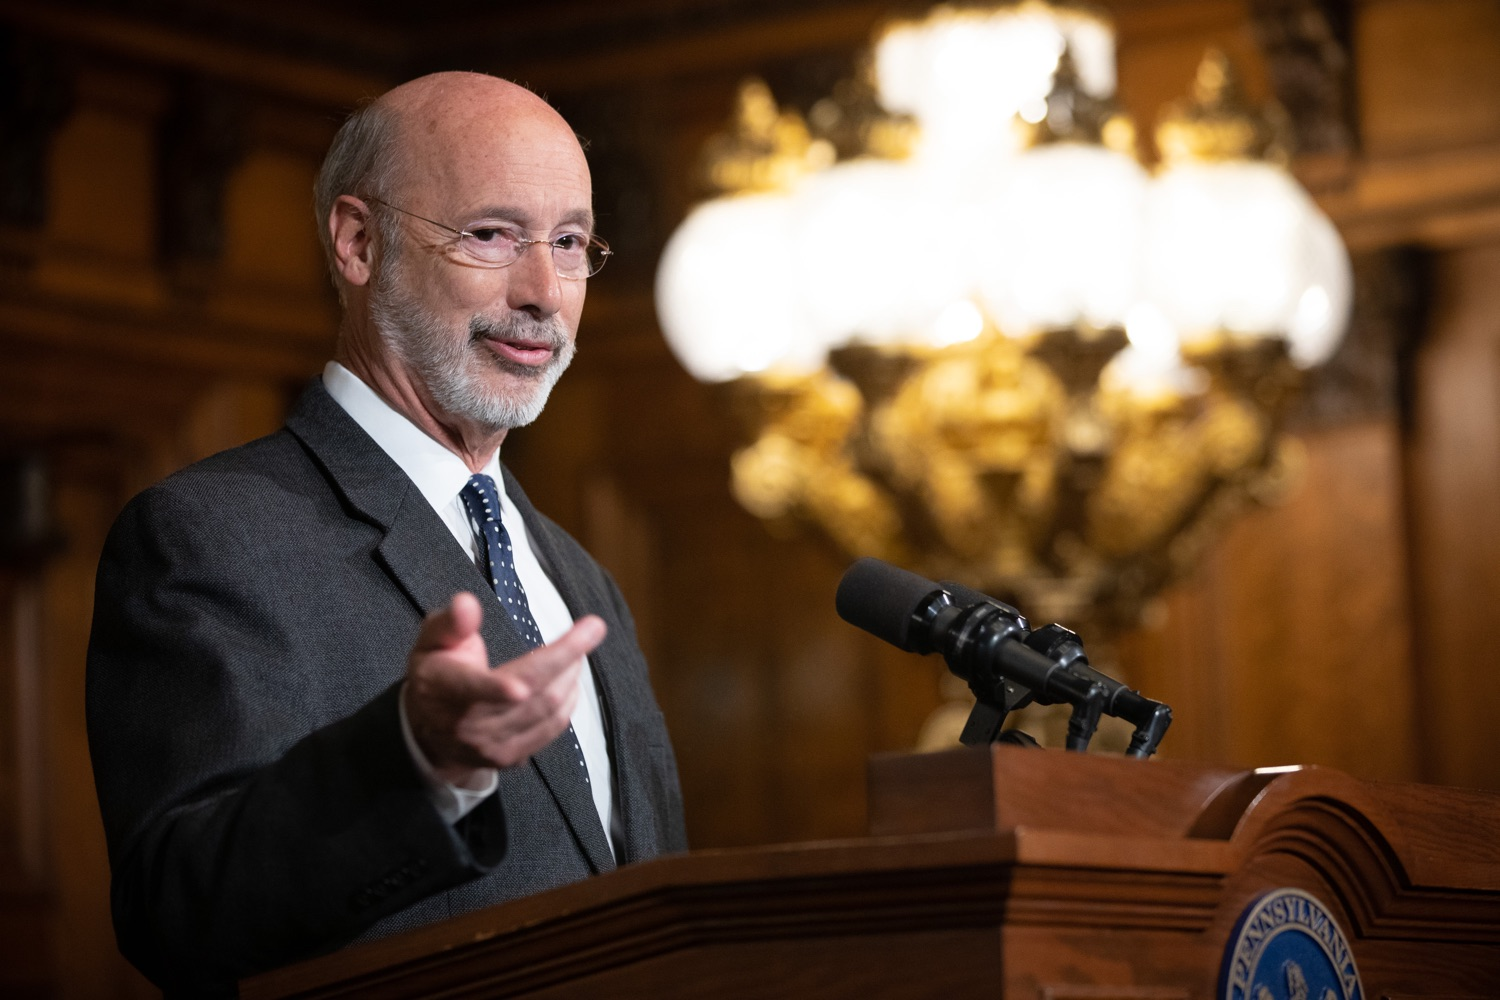 "<a href=""http://filesource.abacast.com/commonwealthofpa/photo/17423_gov_trip_recap_dz_002.jpg"" target=""_blank"">⇣ Download Photo<br></a>Harrisburg, PA  Governor Tom Wolf speaking about his recent visit to Lithuania and Poland.   Governor Tom Wolf today highlighted the second half of his trip abroad, including visiting with more than 500 PA National Guard (PNG) troops in Poland, and honoring the Tree of Life synagogue victims at the Auschwitz-Birkenau Memorial. Tuesday, September 17, 2019"